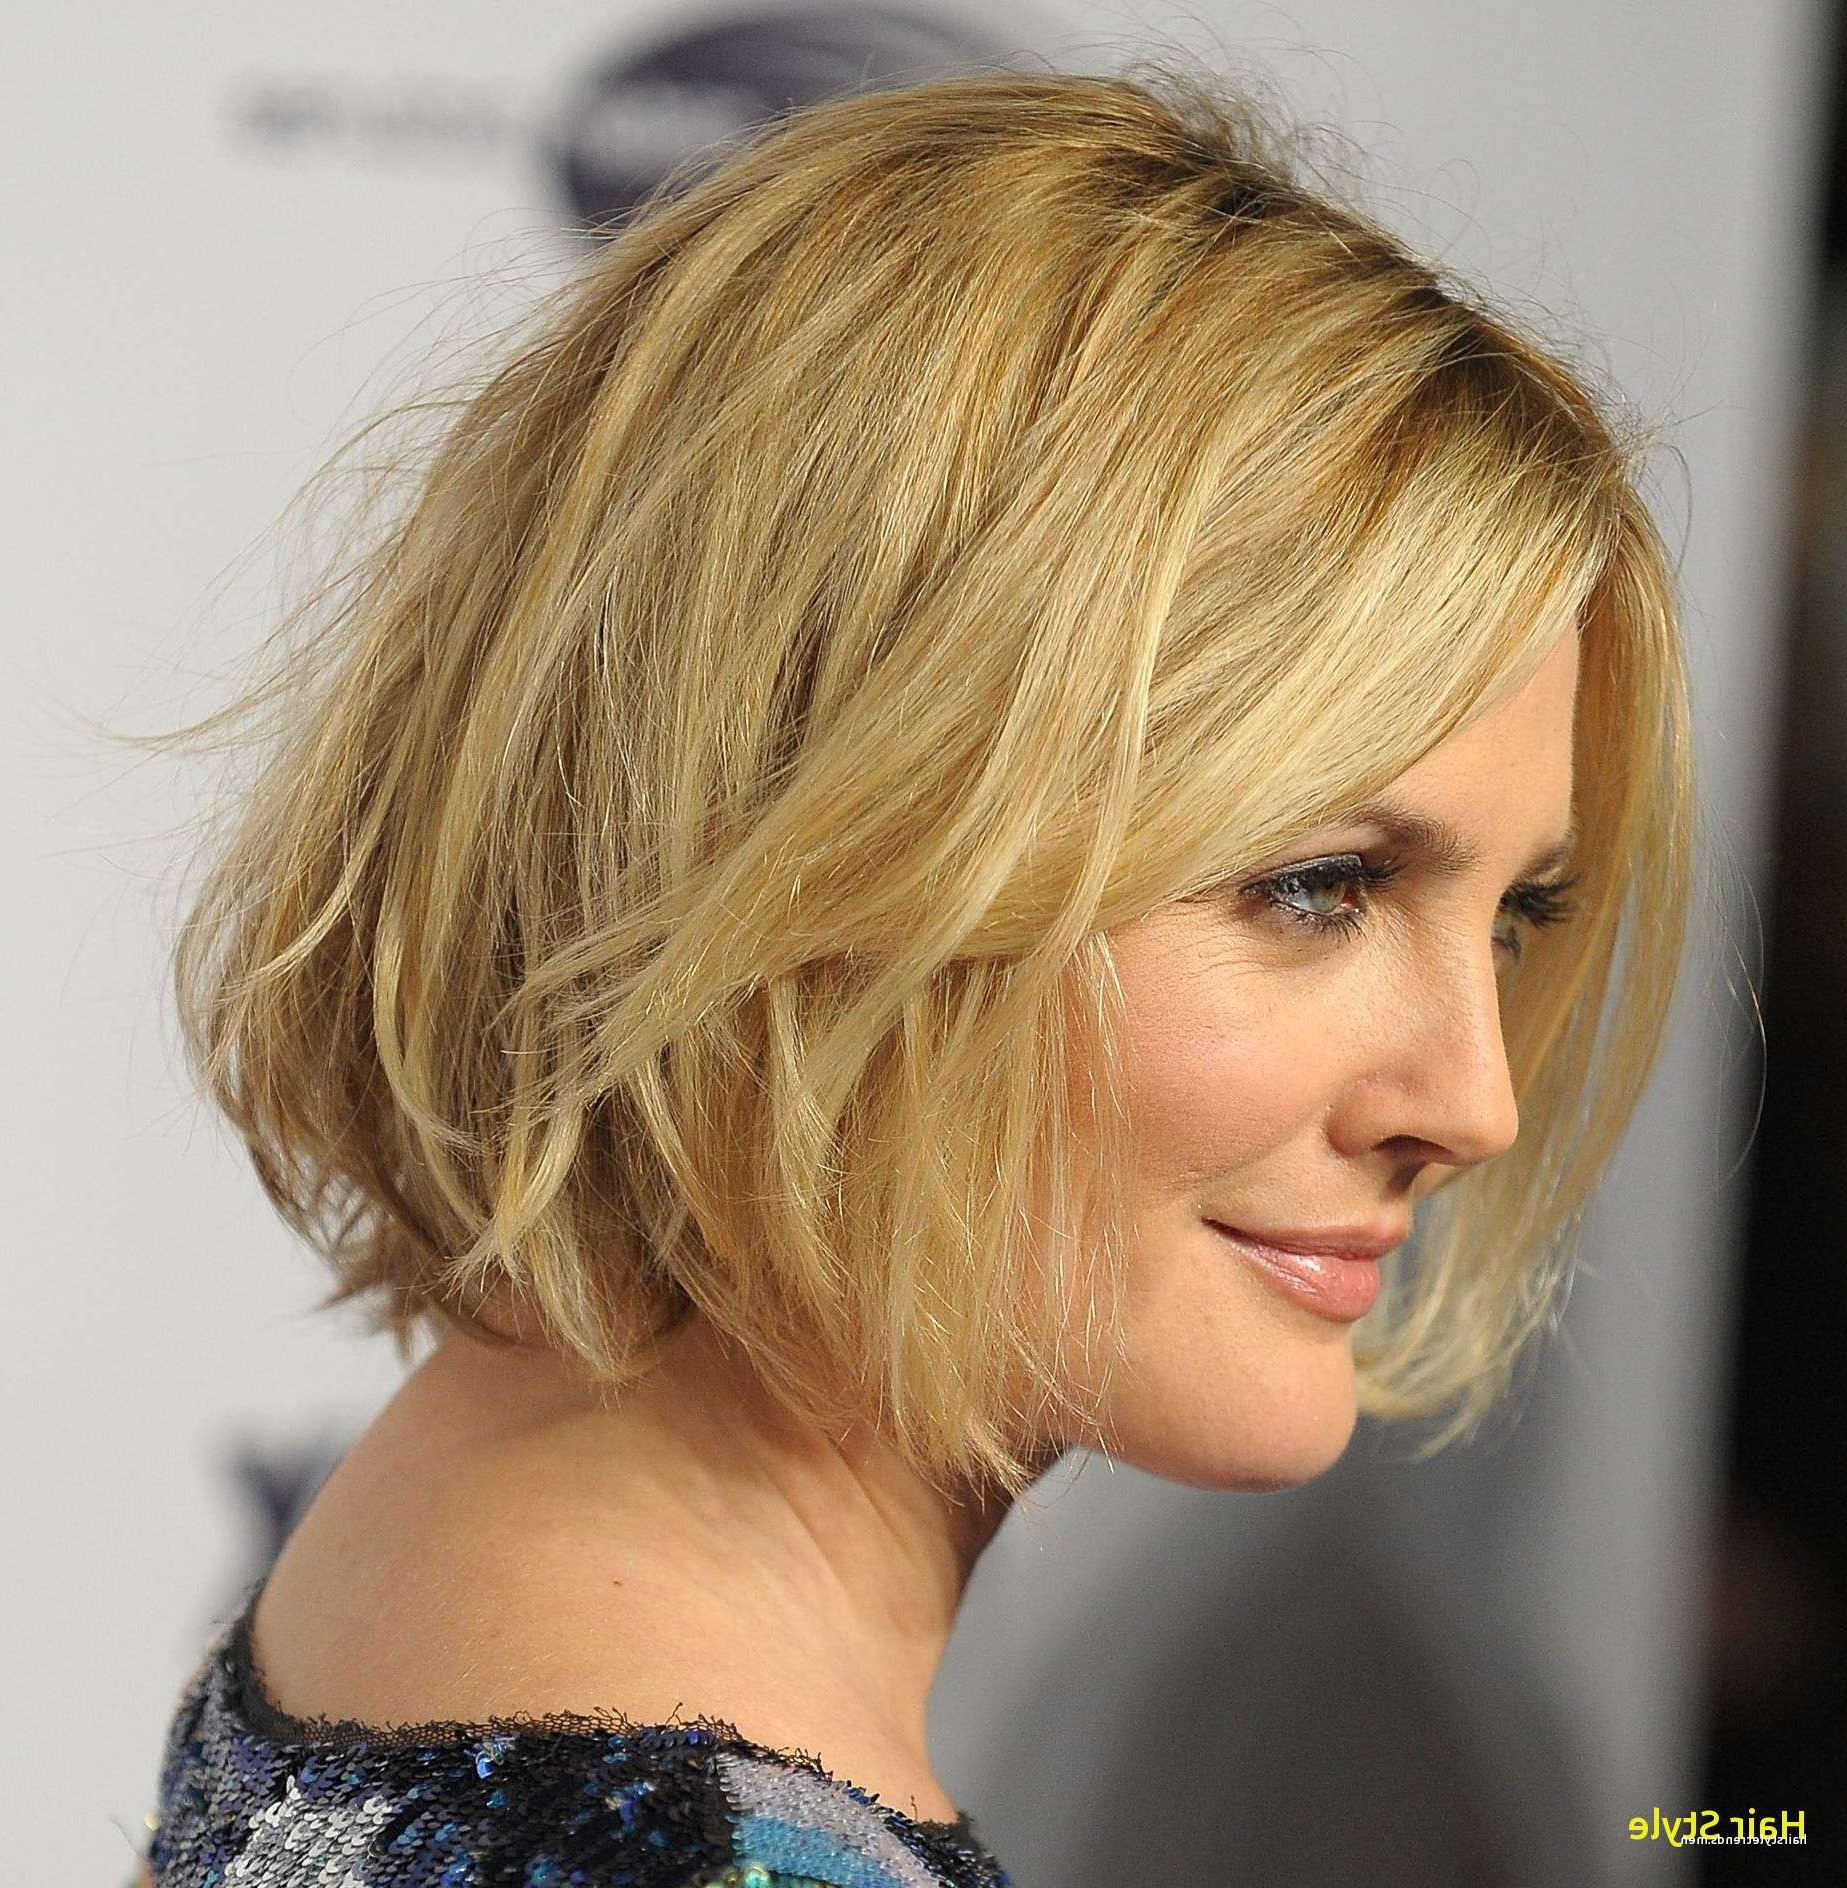 Short Hairstyles For Over 50 Years Old Beautiful Lovely Short Cuts Within Short Cuts For Over (View 23 of 25)